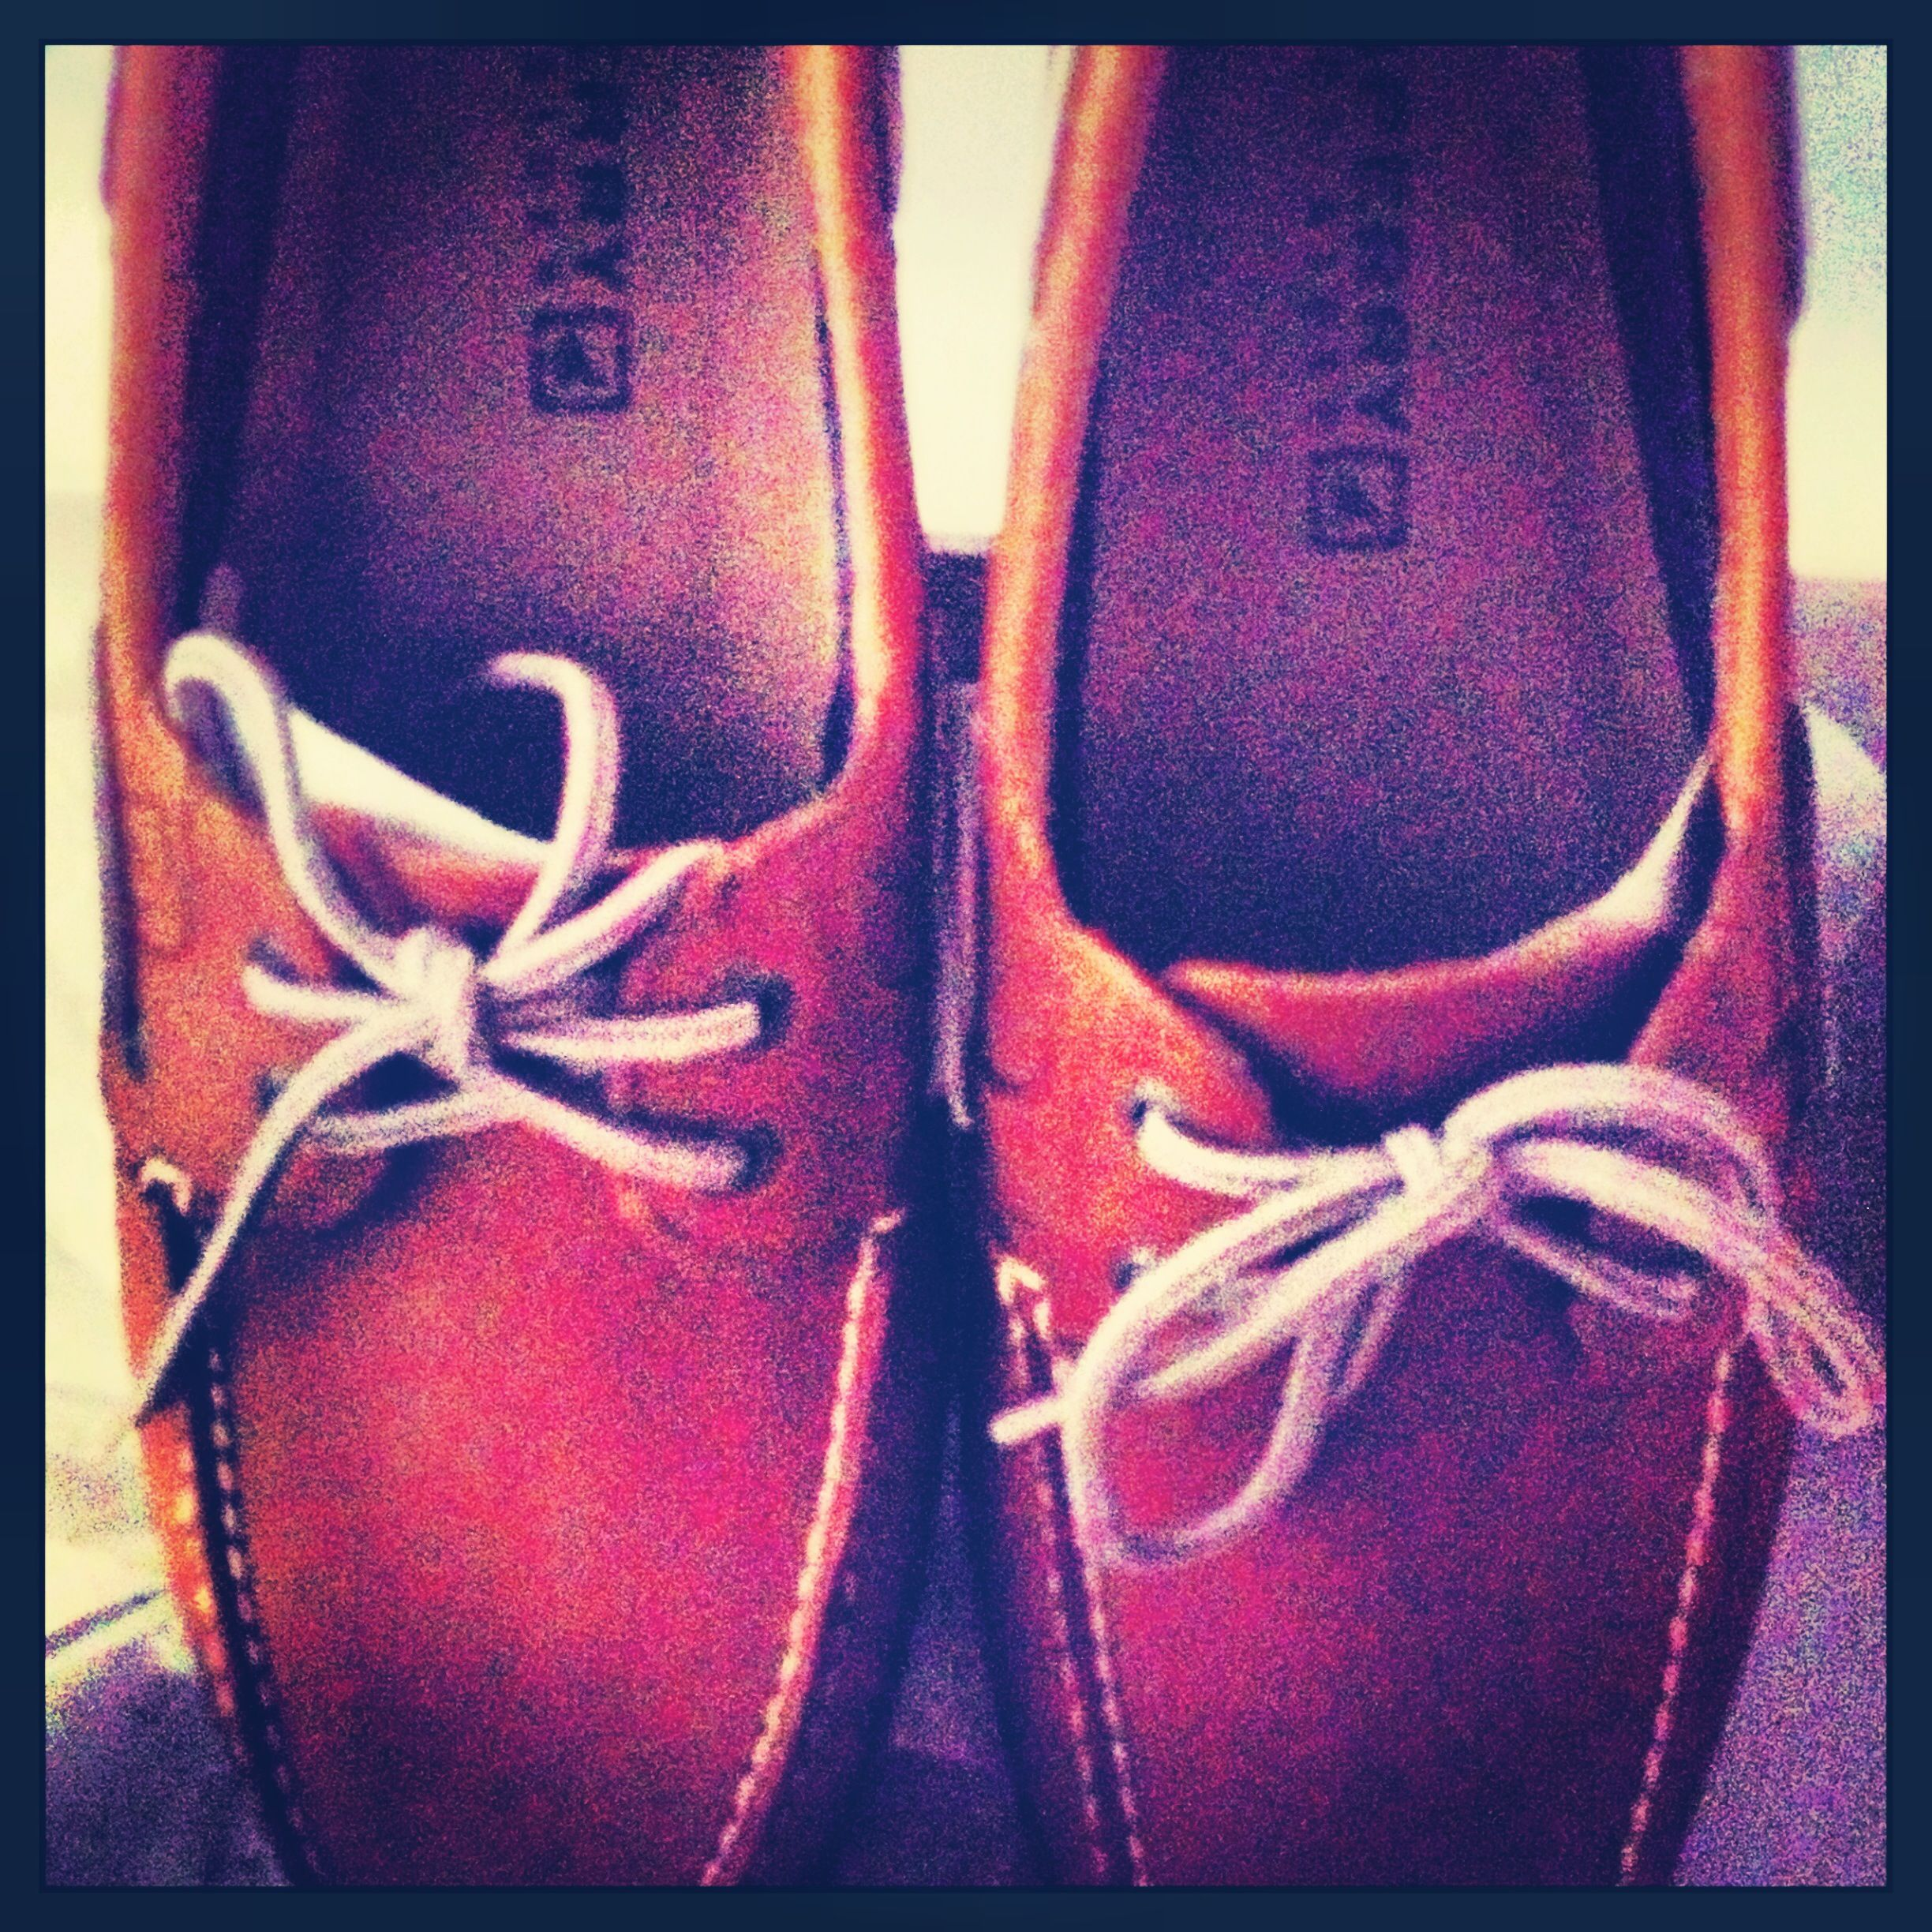 Sperrys for my boo.